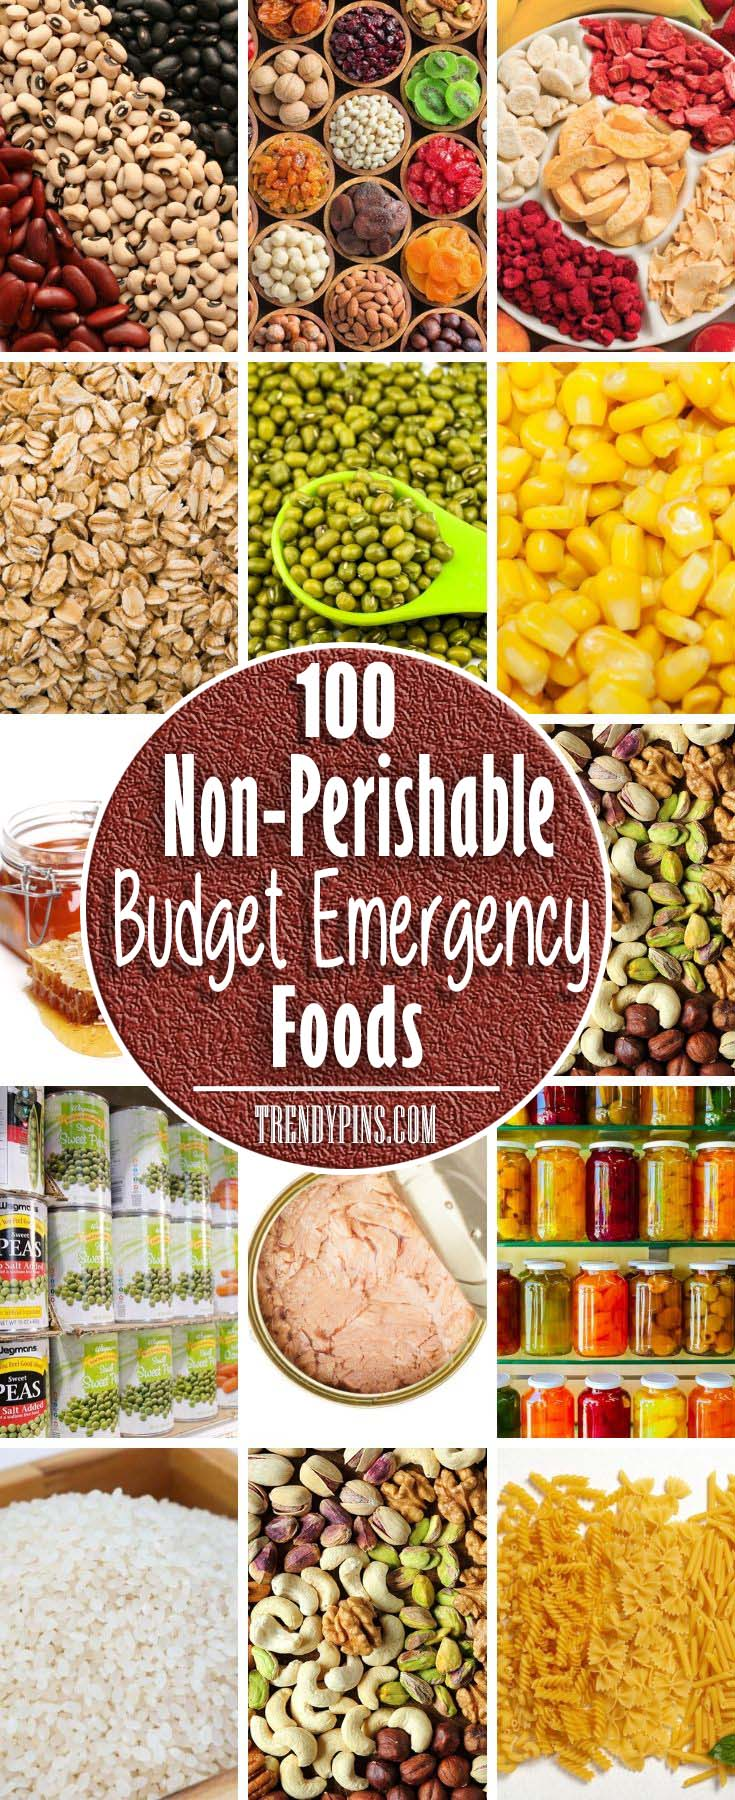 "Keeping these items in stock will help you save time and minimize effort the next time you're asked that perennial question: ""what's for dinner?"" #non-perishable foods #foods #trendypins"